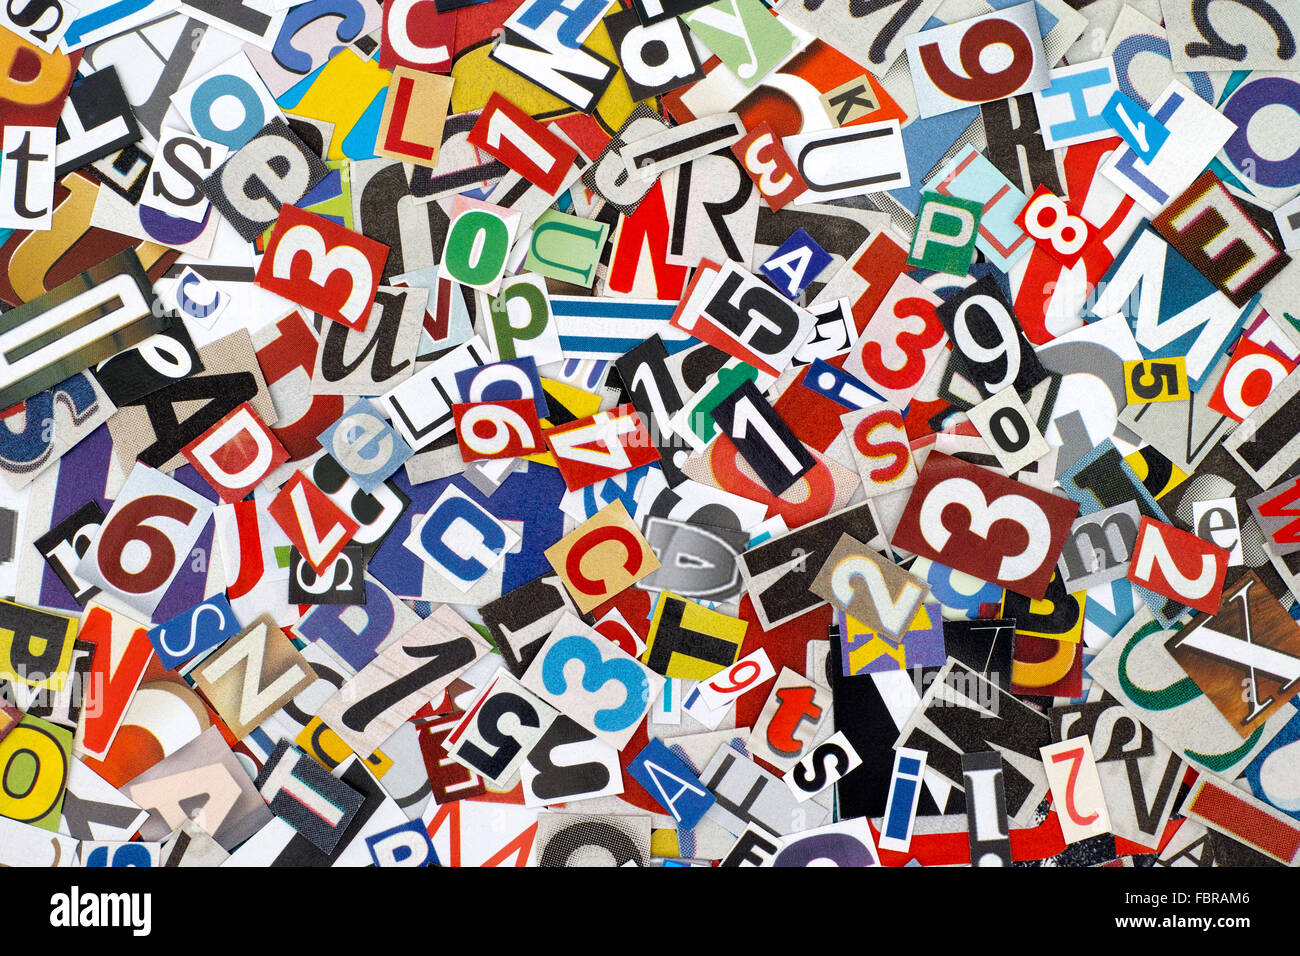 Heap of cutout letters and numbers from newspapers and magazines heap of cutout letters and numbers from newspapers and magazines spiritdancerdesigns Choice Image